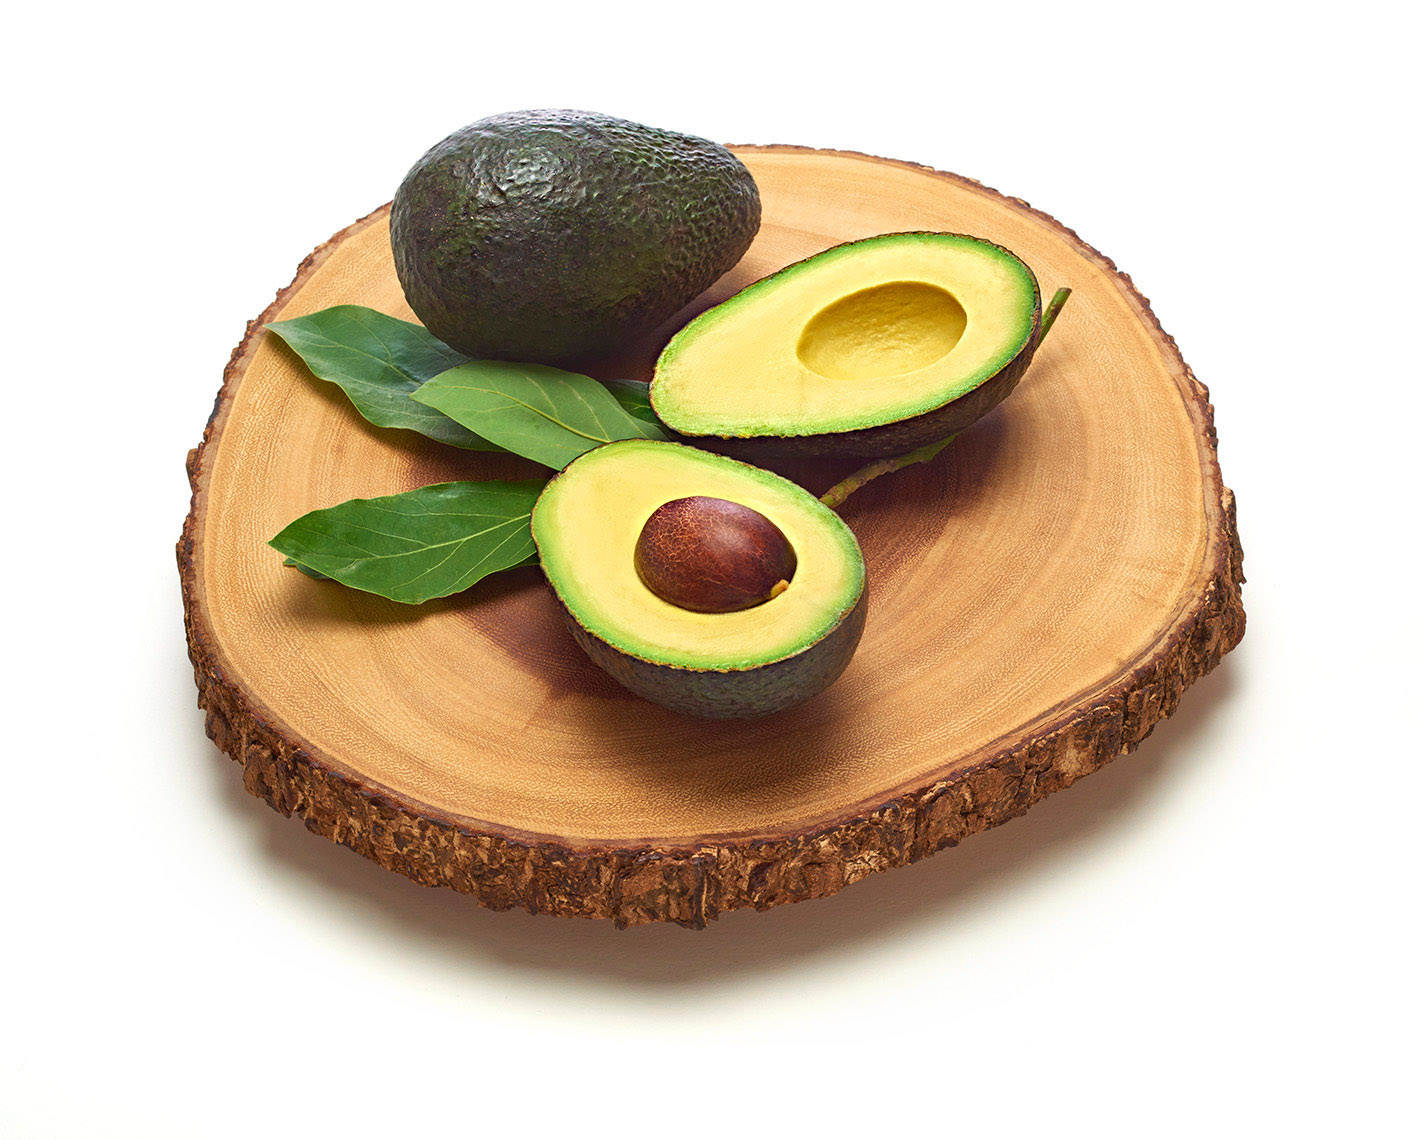 Whole-and-cut-Hass-avocados-on-cutting-board-by-Joe-Atlas-food-photography.